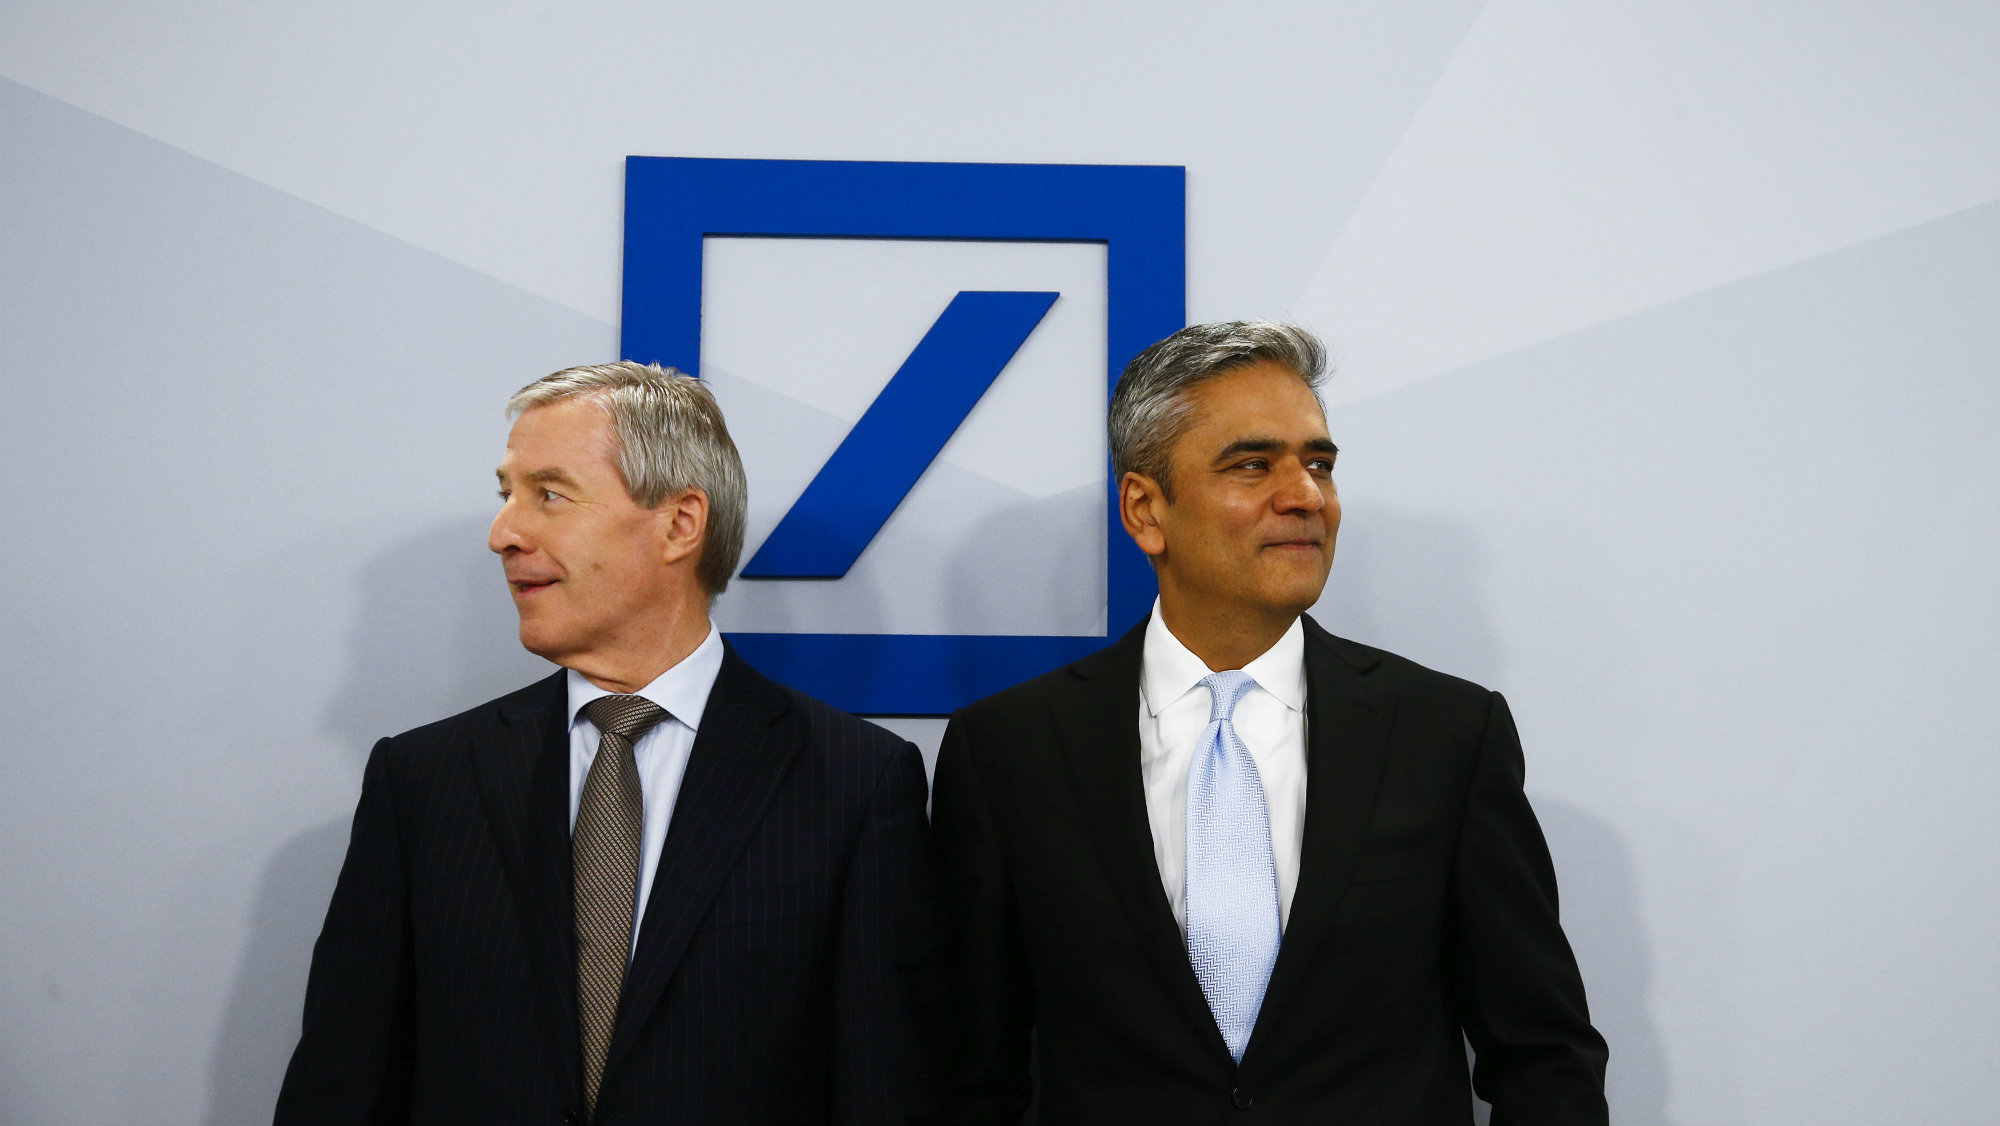 Anshu Jain (R) and Juergen Fitschen, Co-CEOs of Deutsche Bank AG arrive for the bank's annual news conference in Frankfurt.